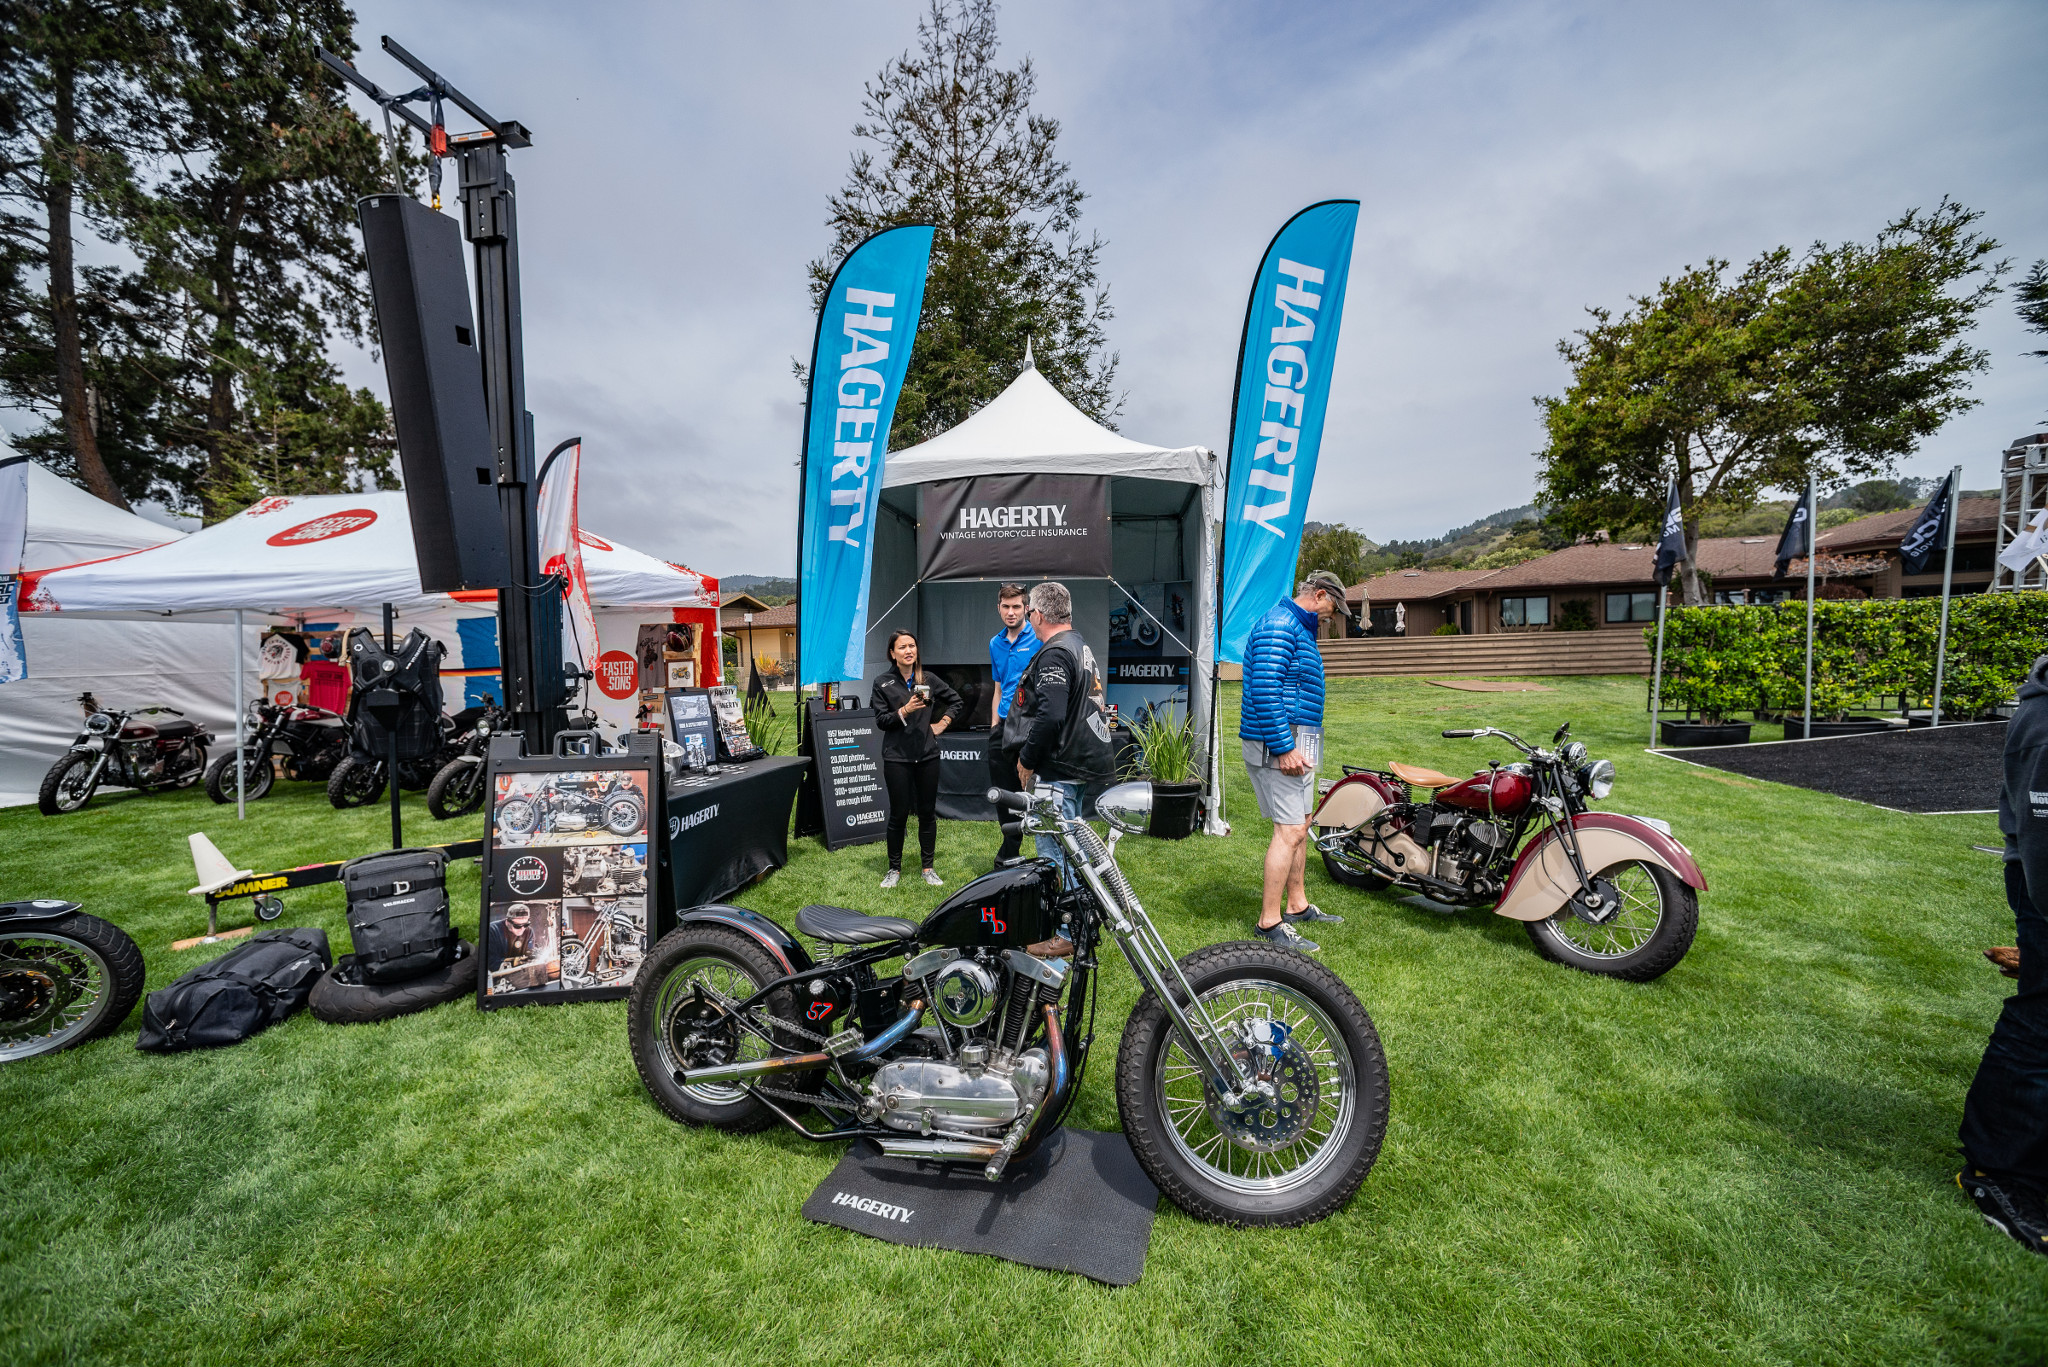 Hagerty Harley on the lawn at quail